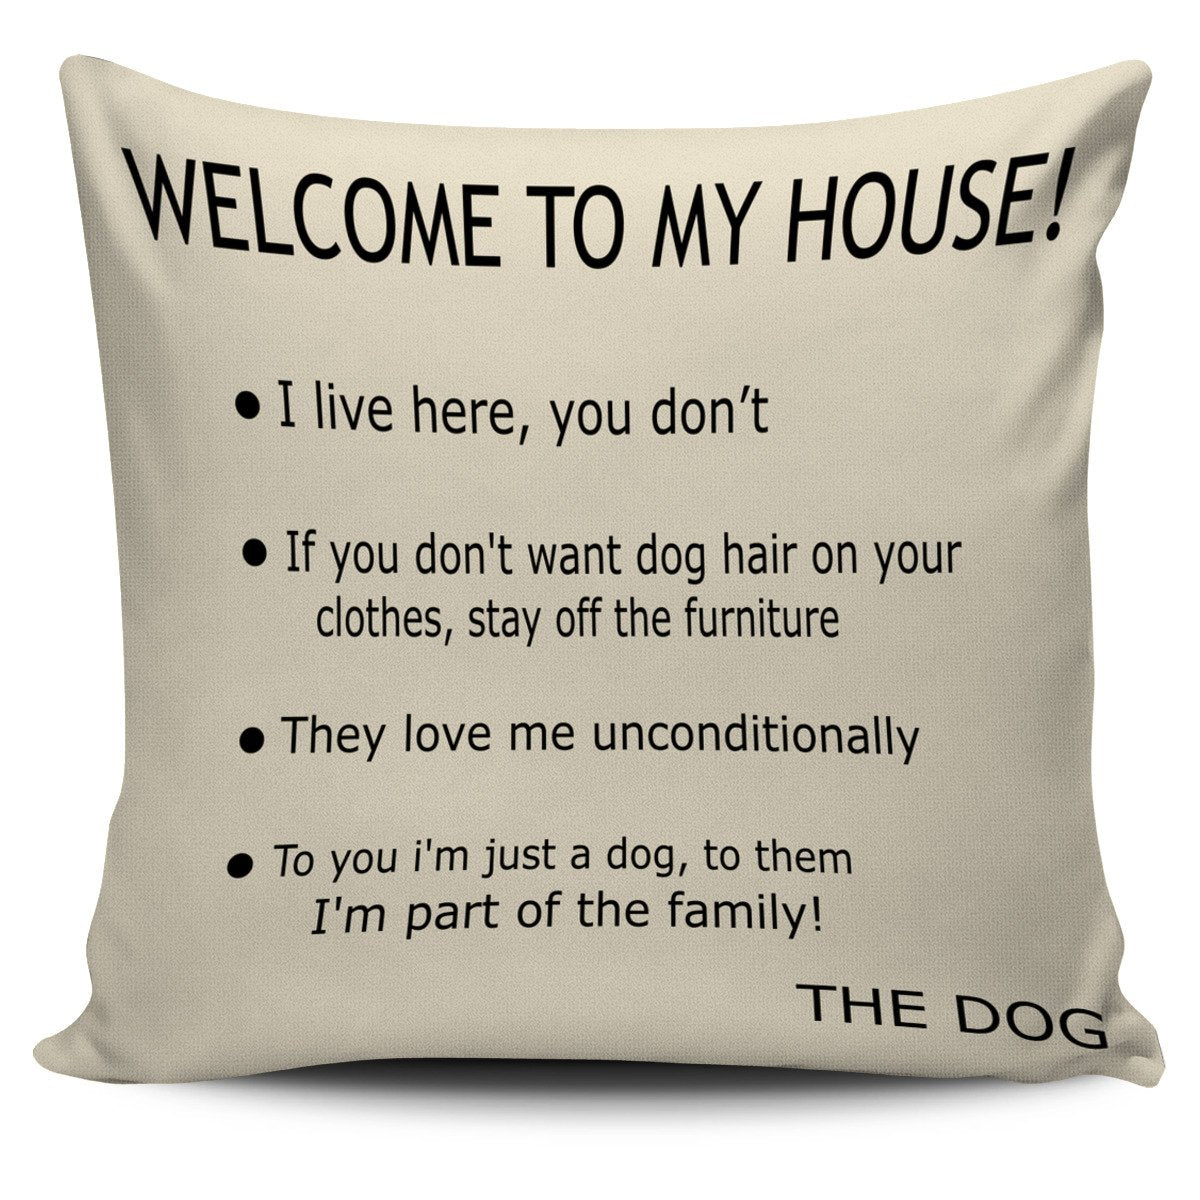 Dog's house Pillow Cover-DogsTailCircle